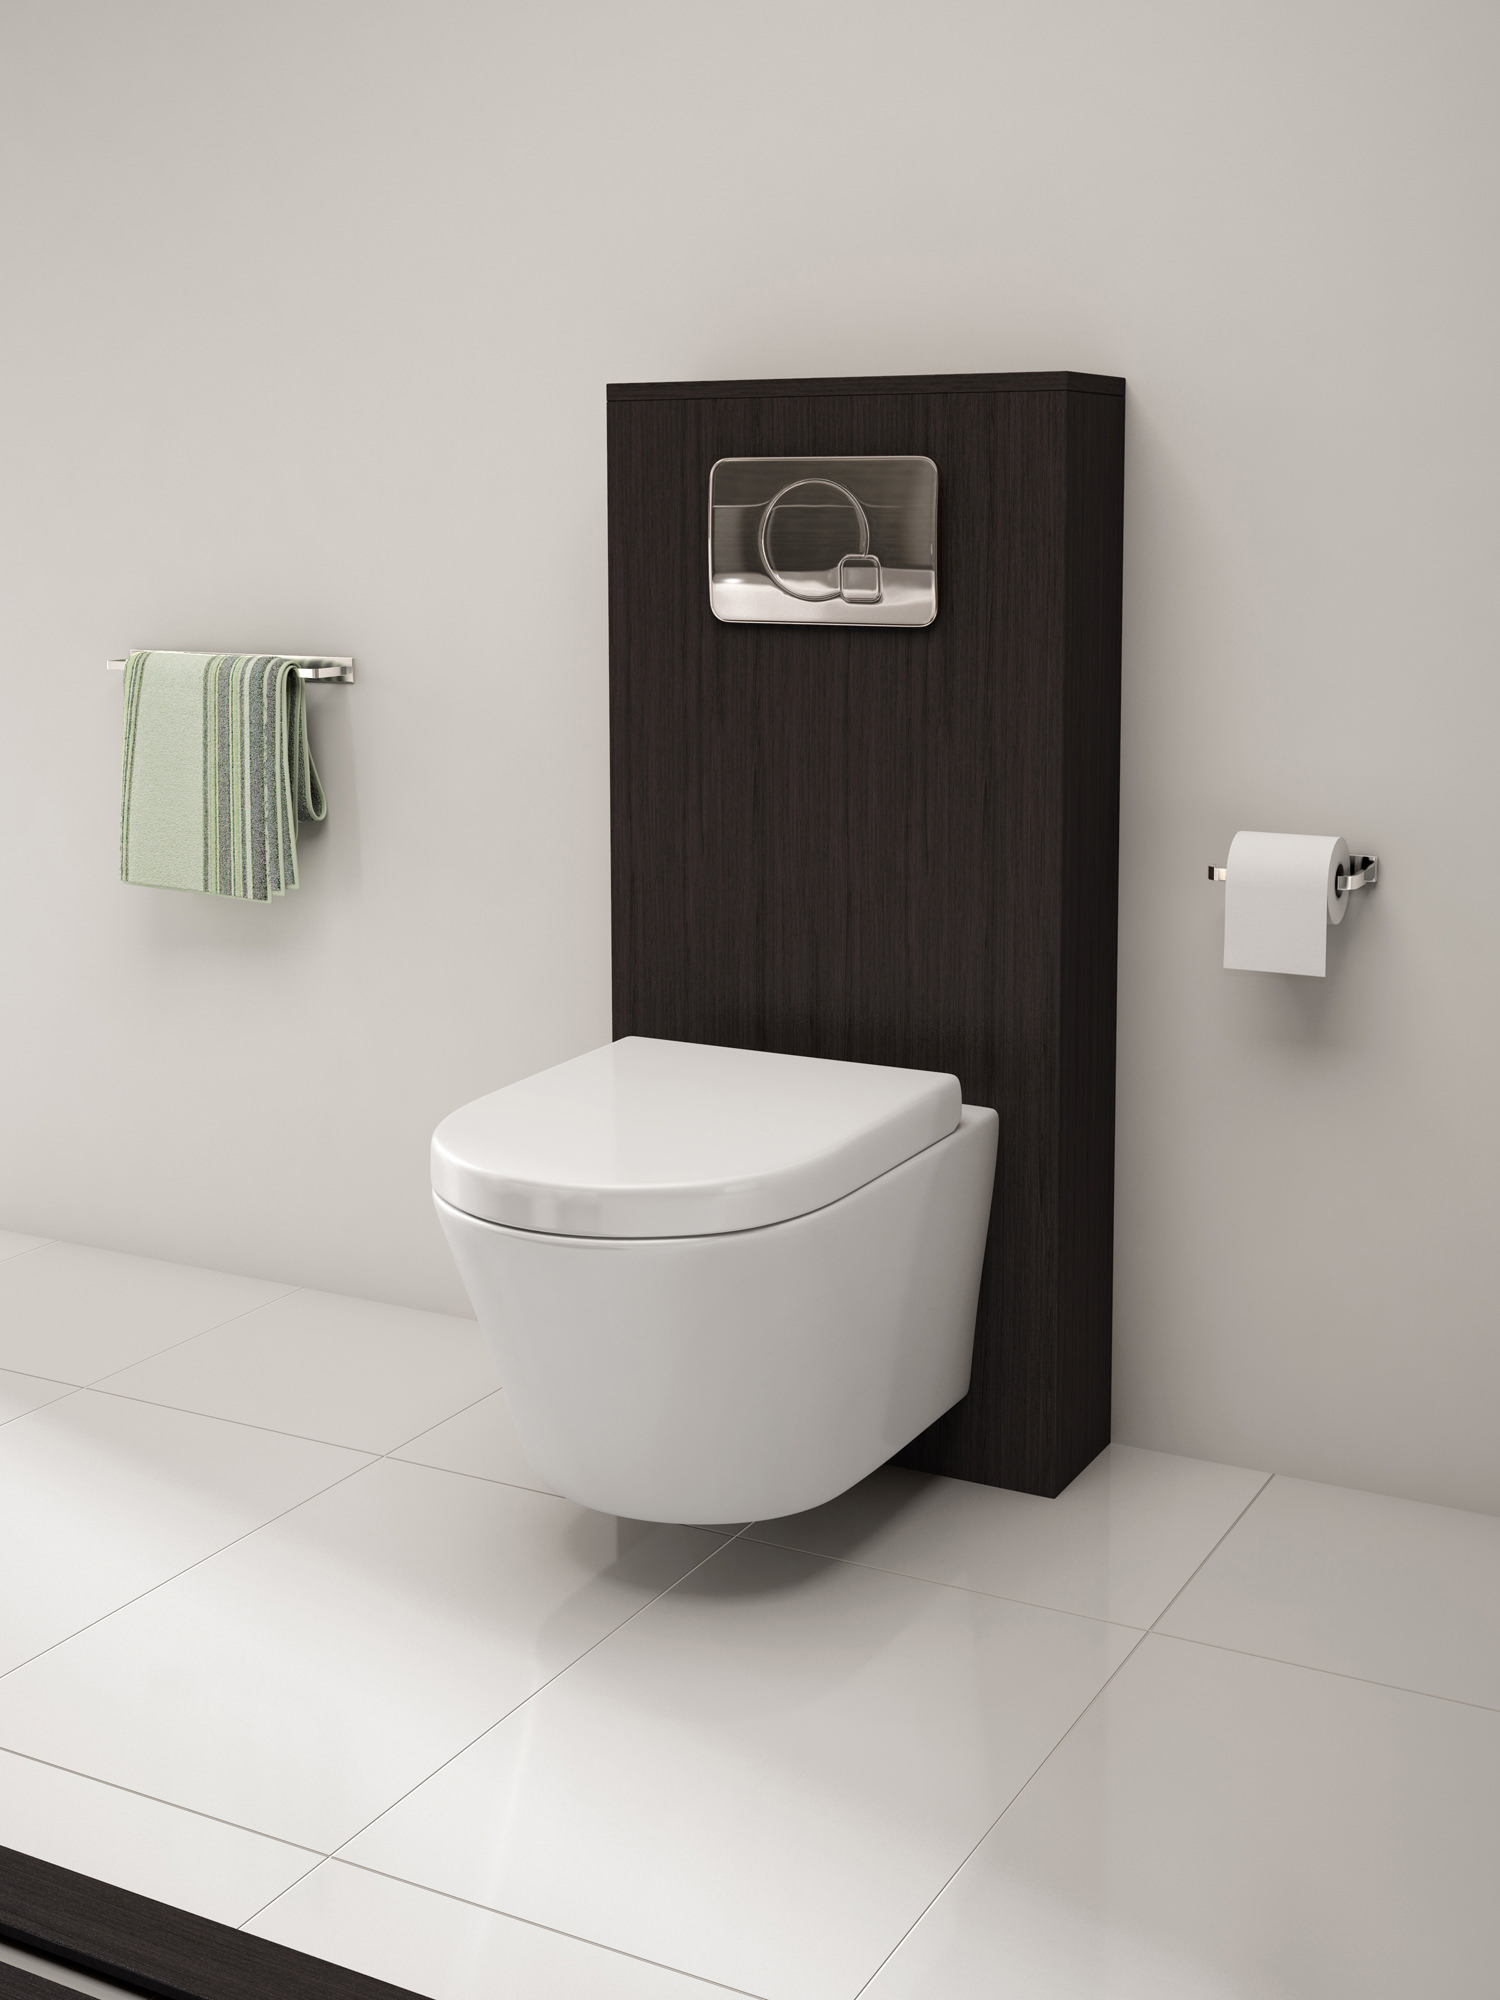 Imex Ceramics Arco Rimless Wall Hung Toilet Pan With Soft